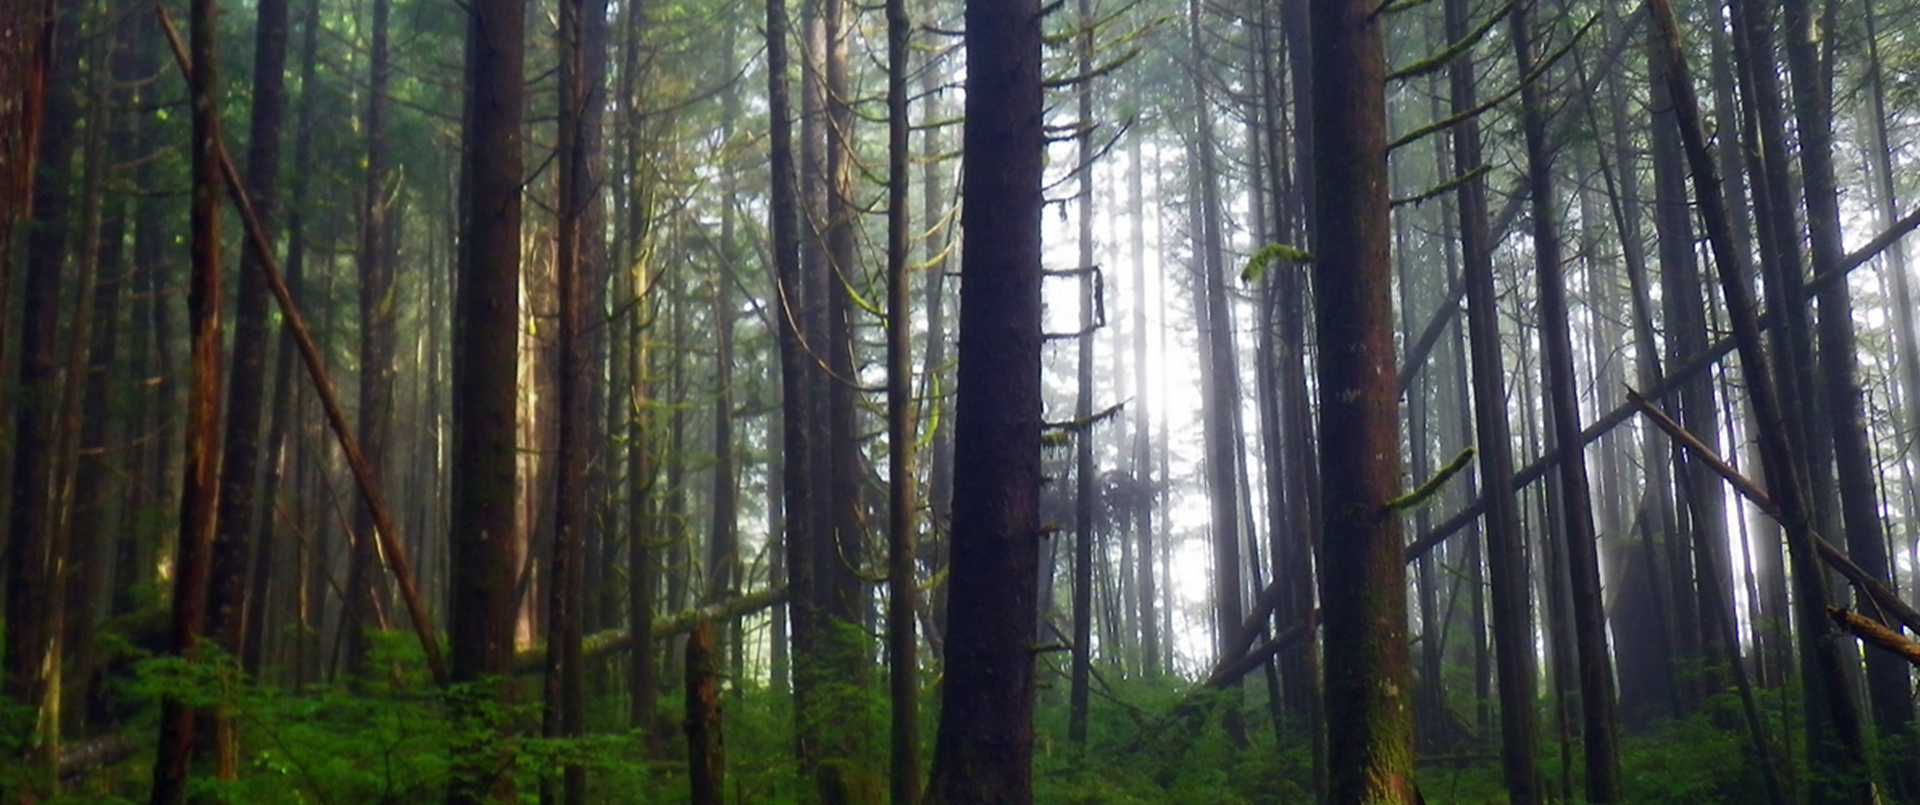 Forest Wealth Coastal First Nations